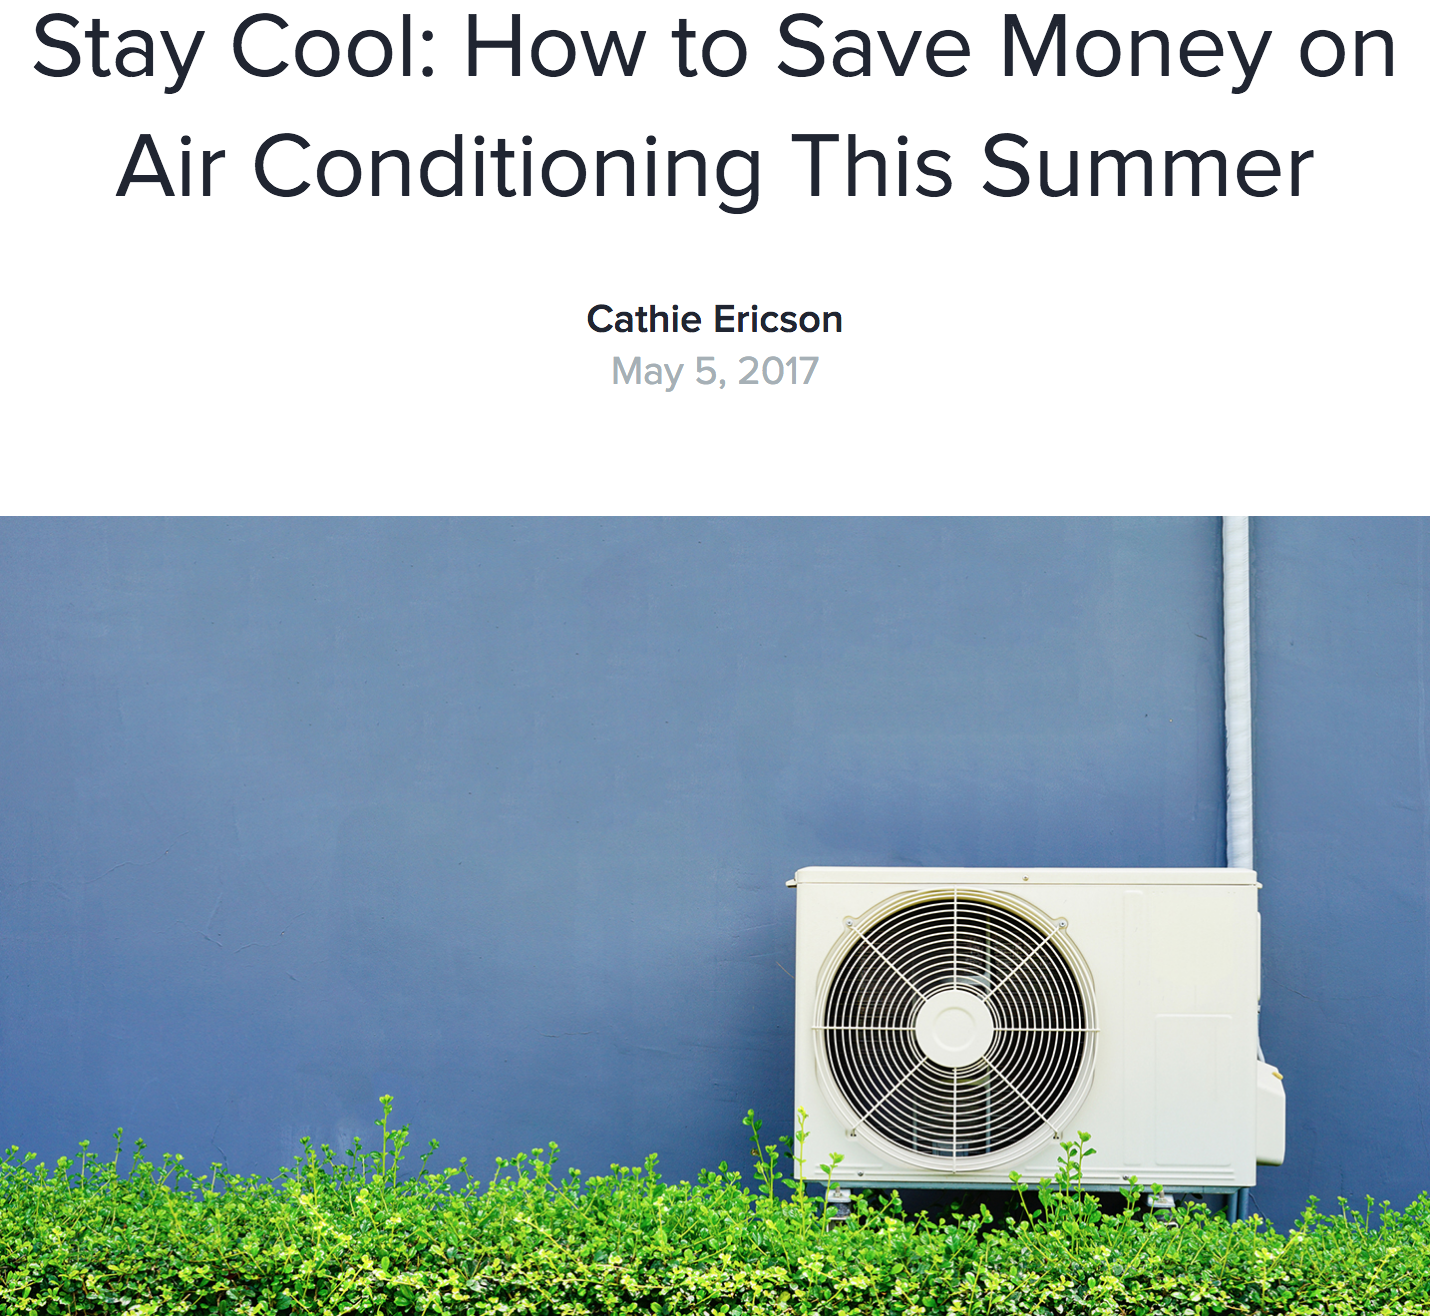 Insider Tips for Saving Money on Your Air Conditioning This